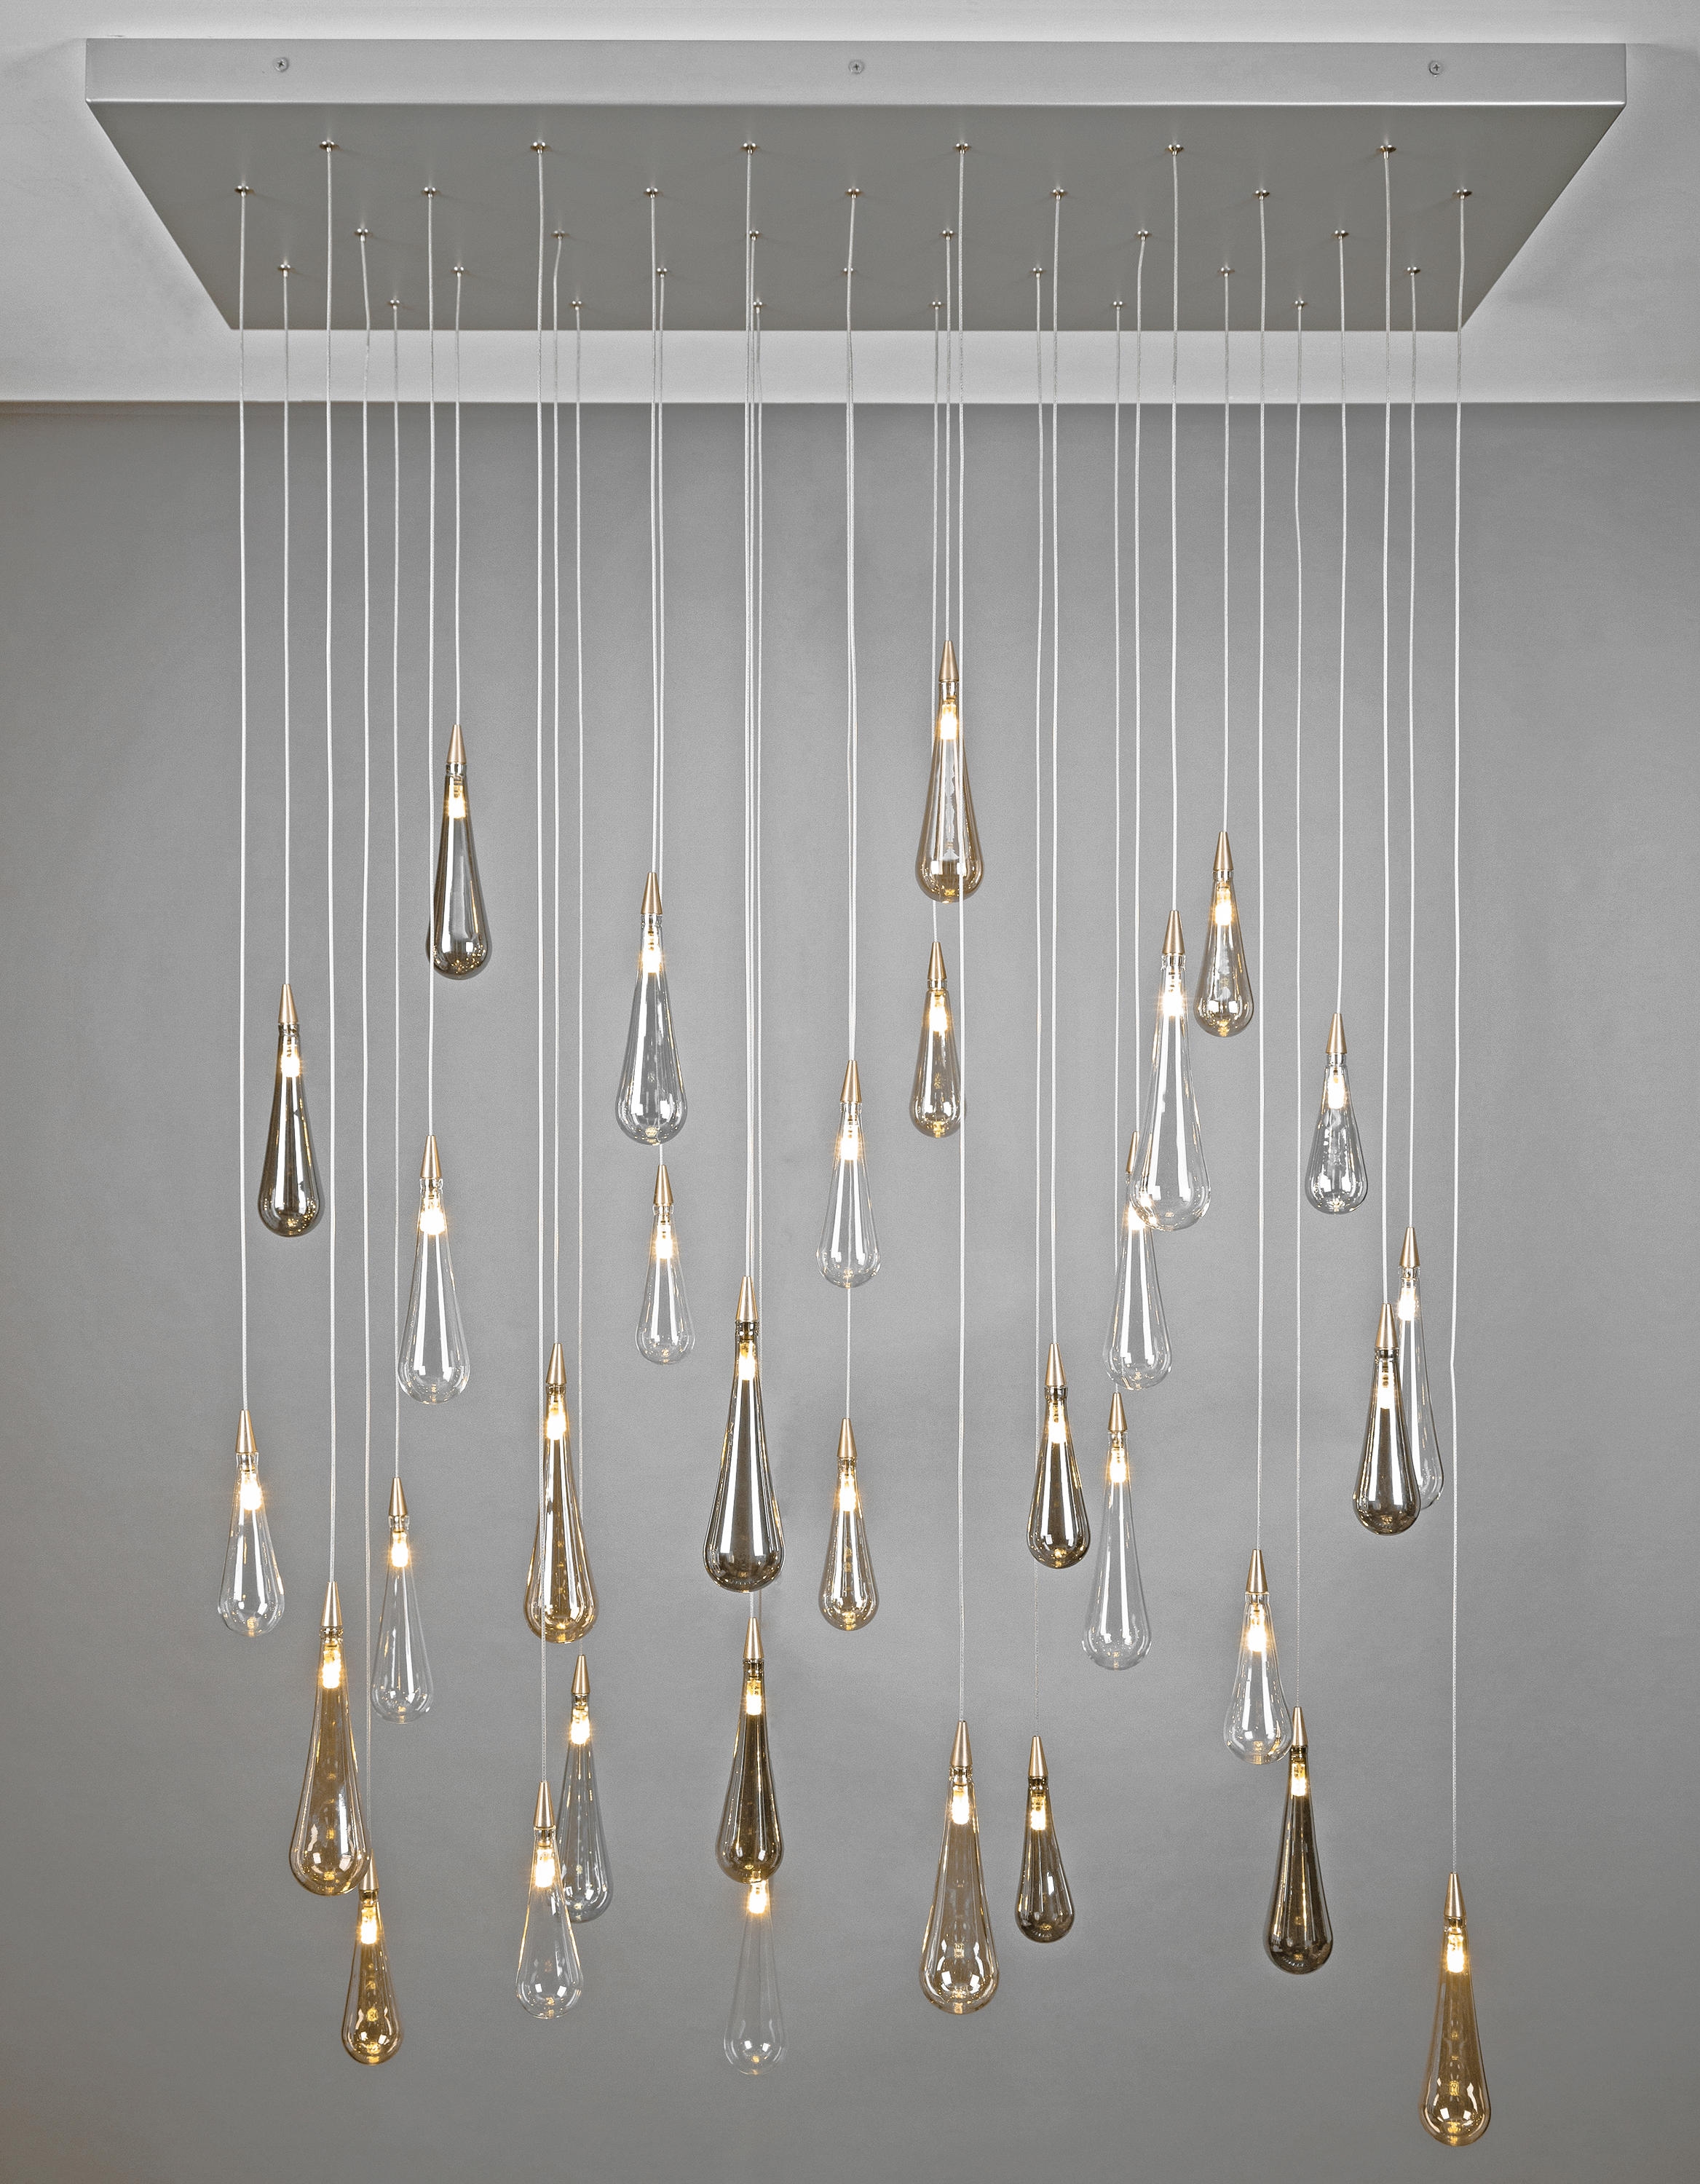 Rain Drop Suspended Lights From Shakuff Architonic